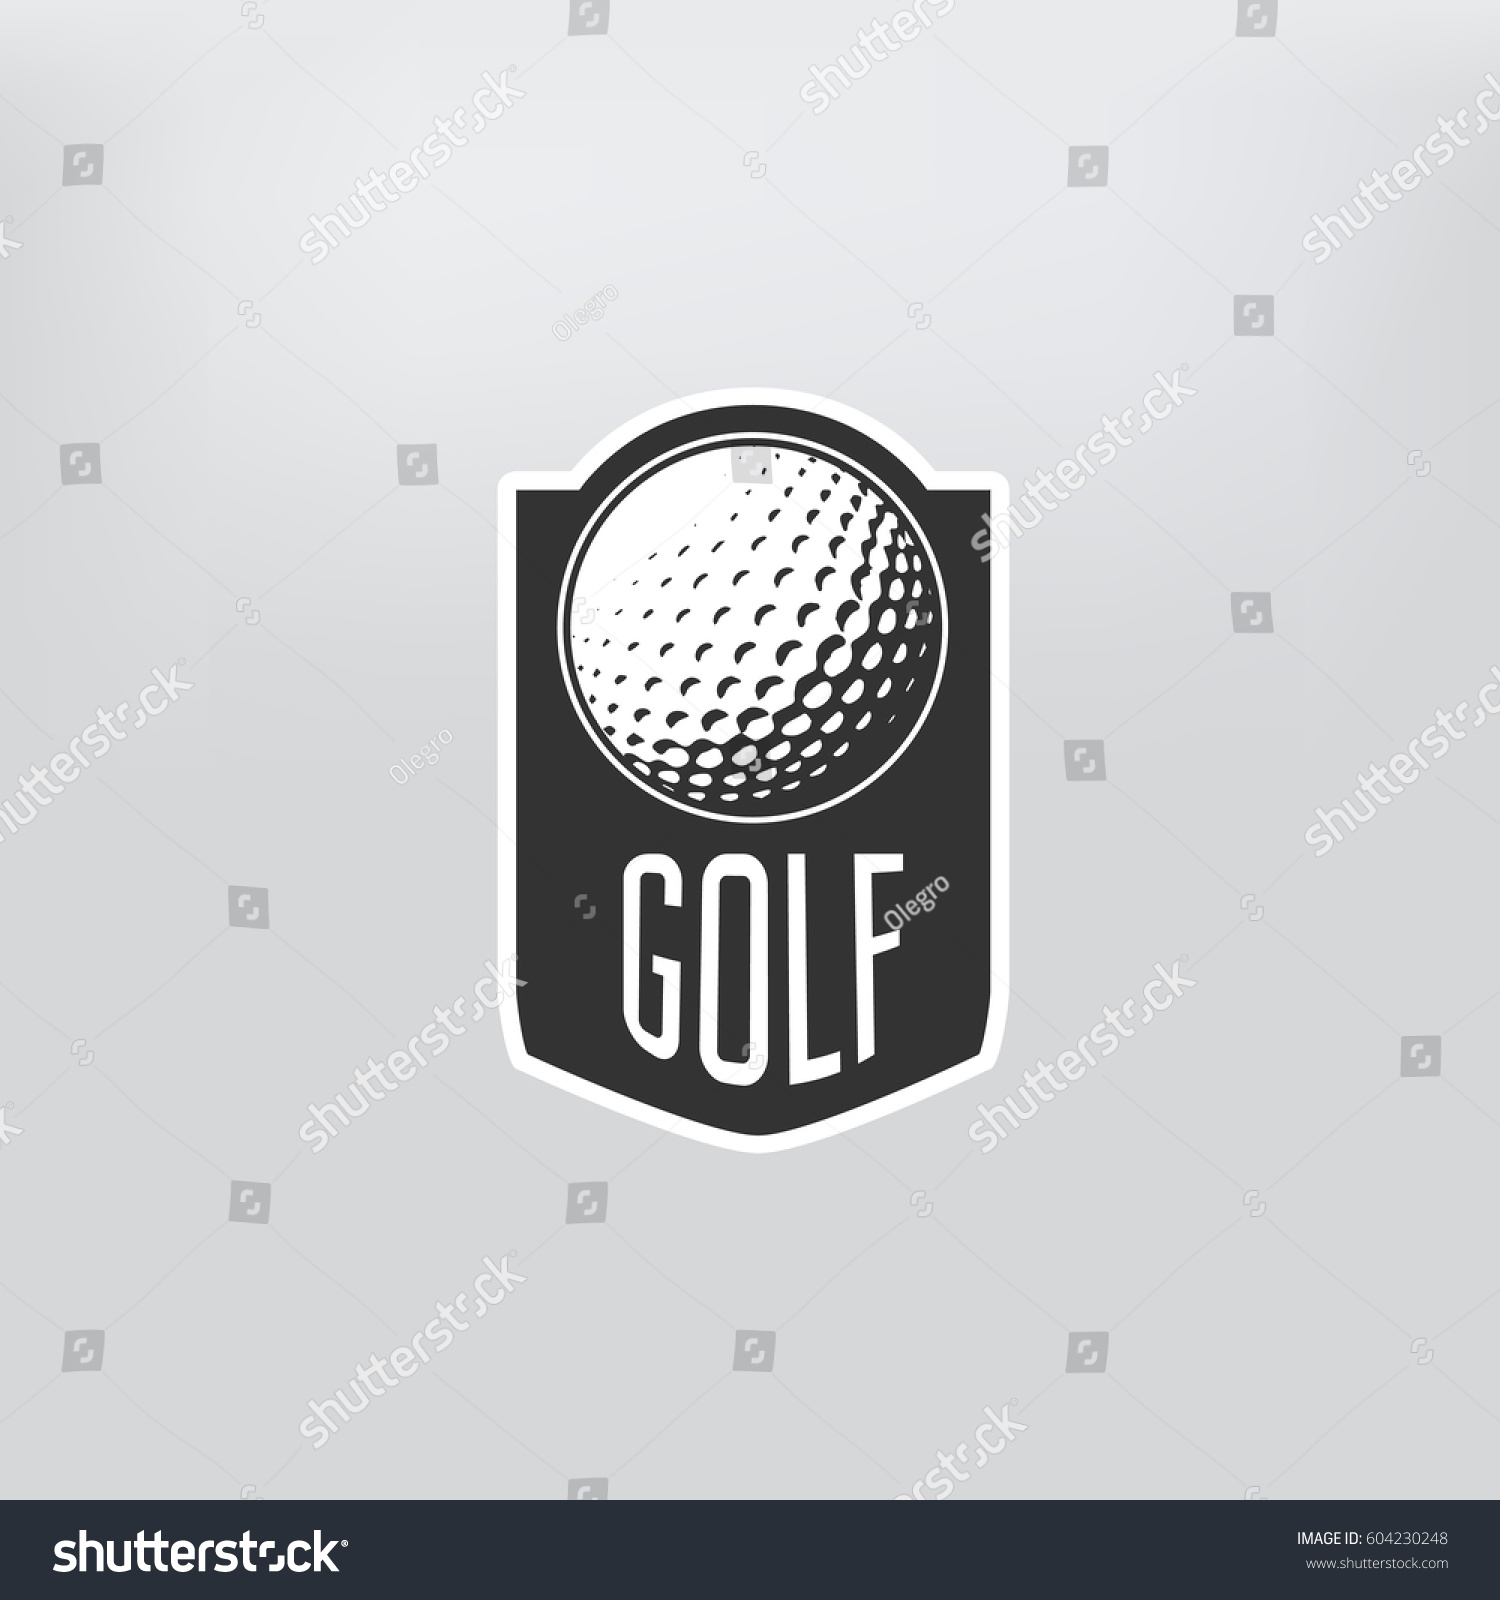 Golf label. sign of golf championship or golf club. Vector illustration